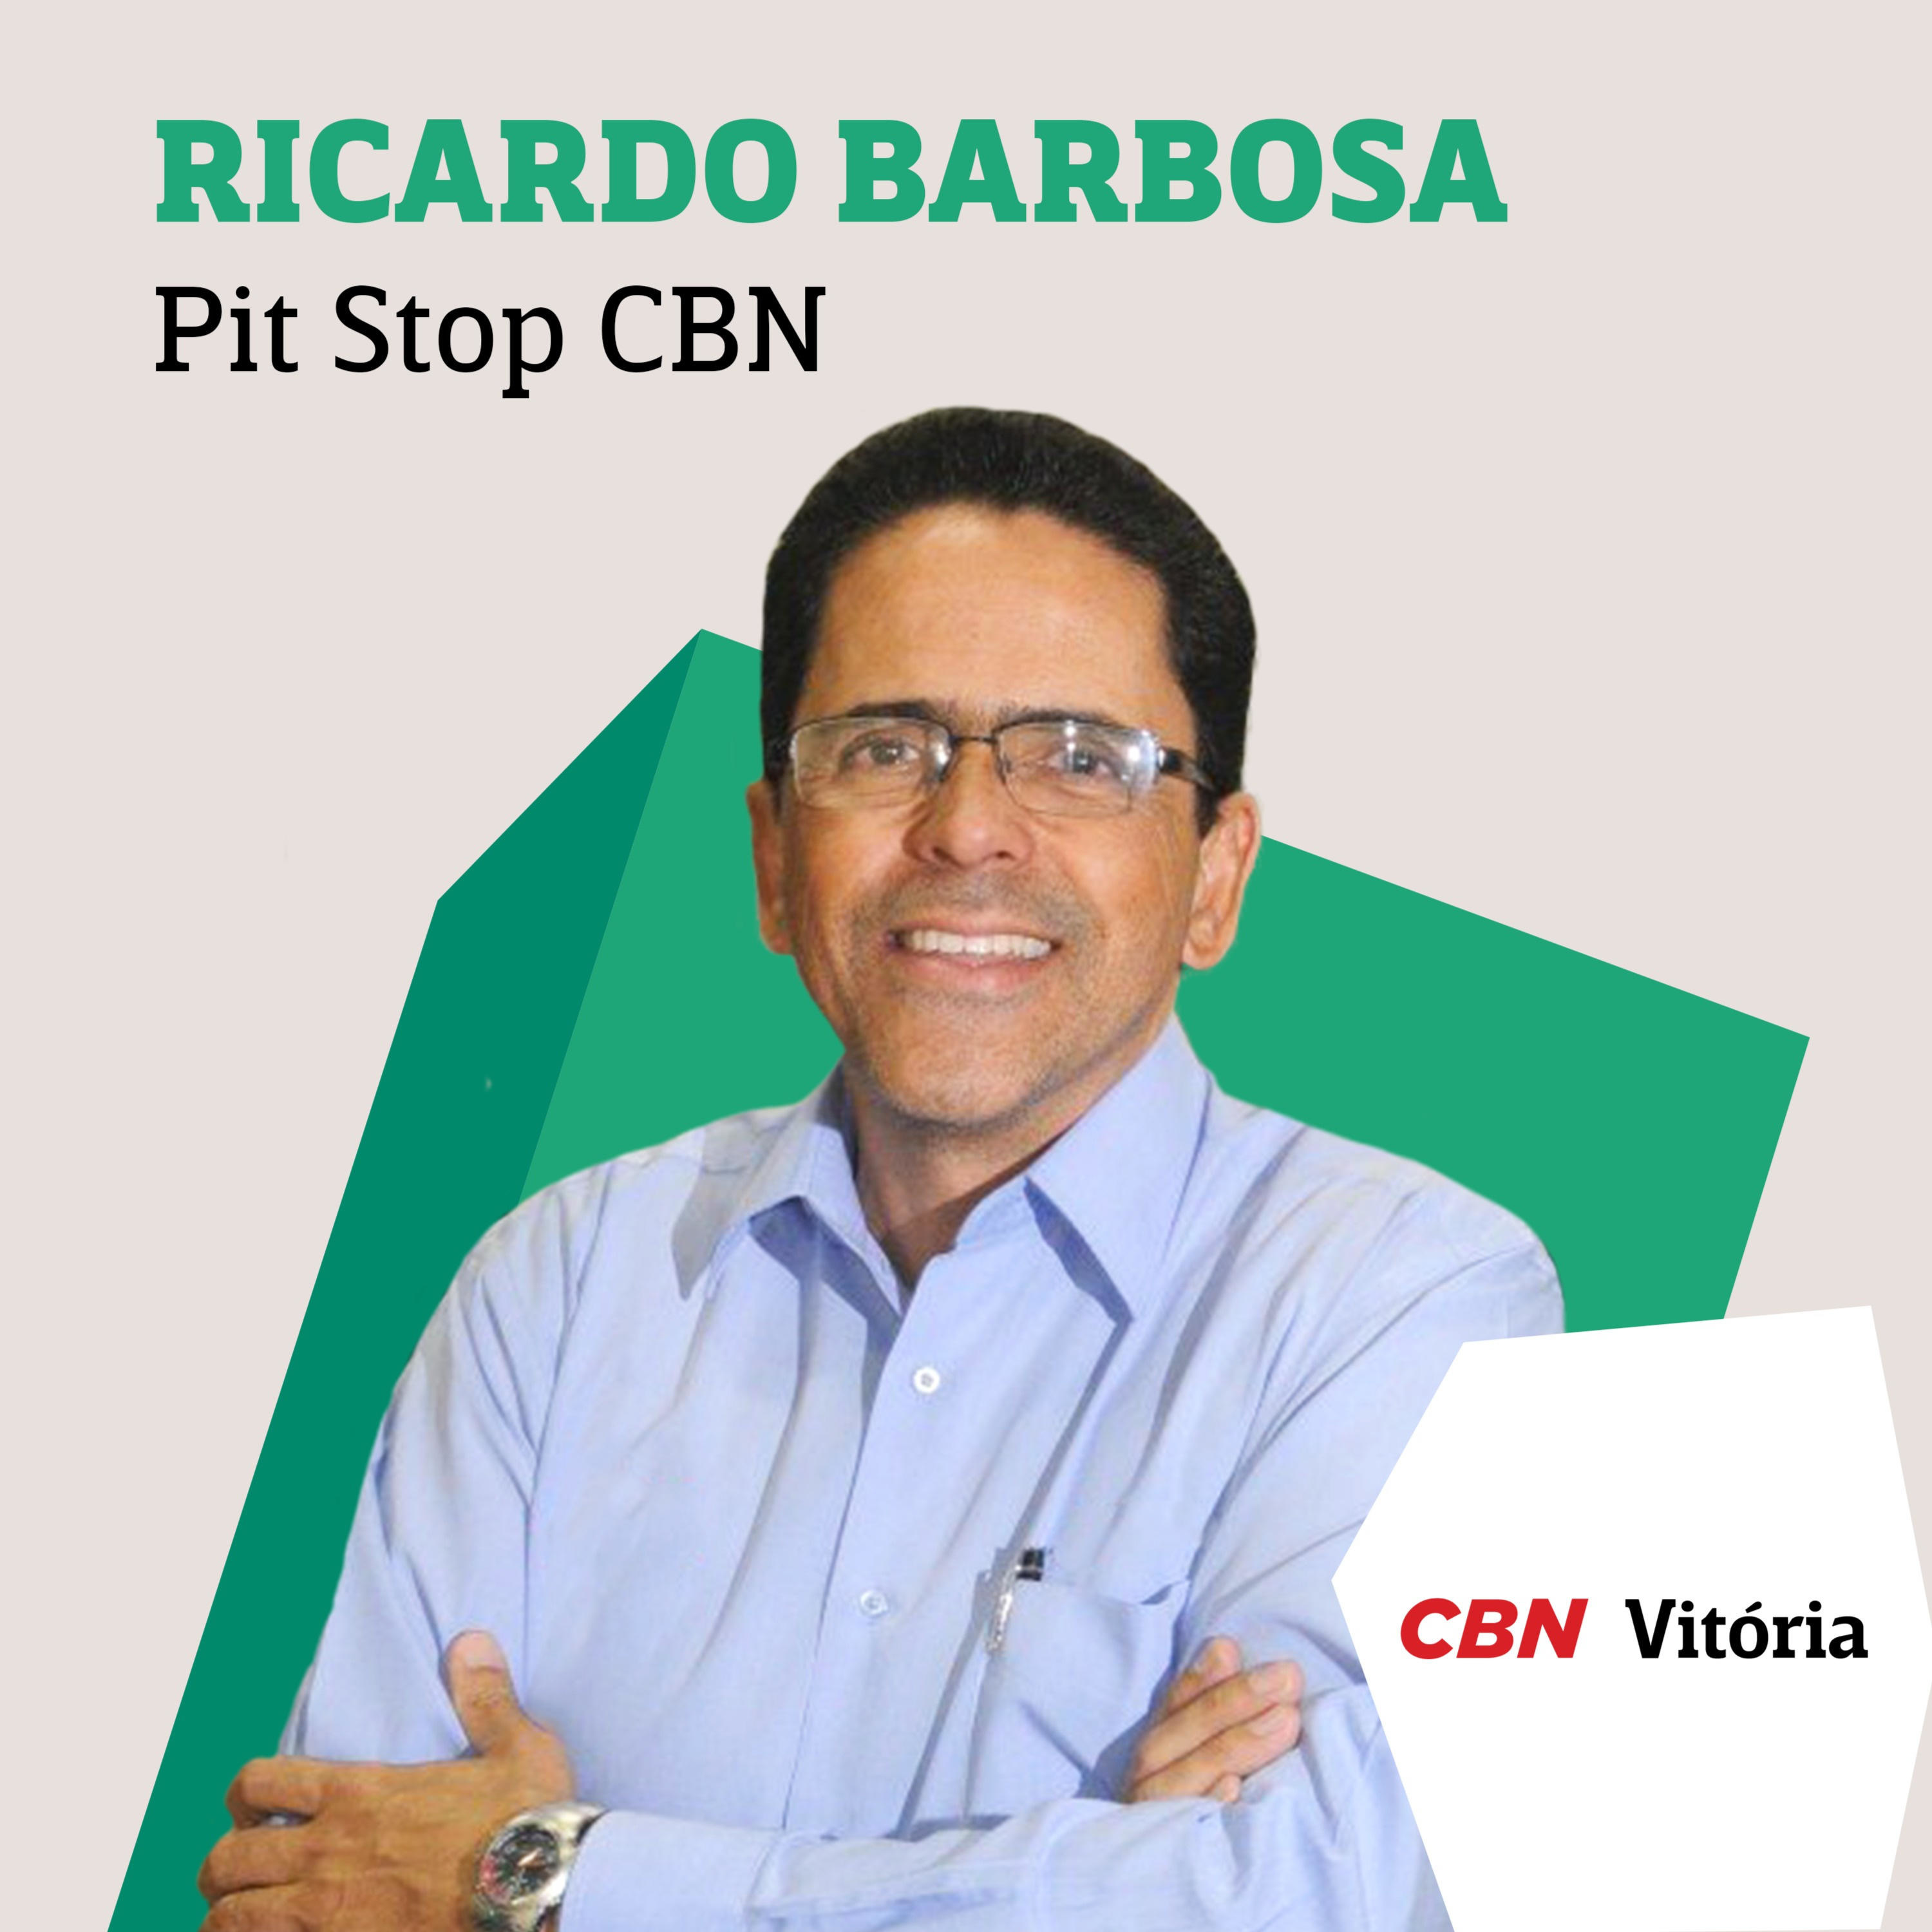 Pit Stop CBN